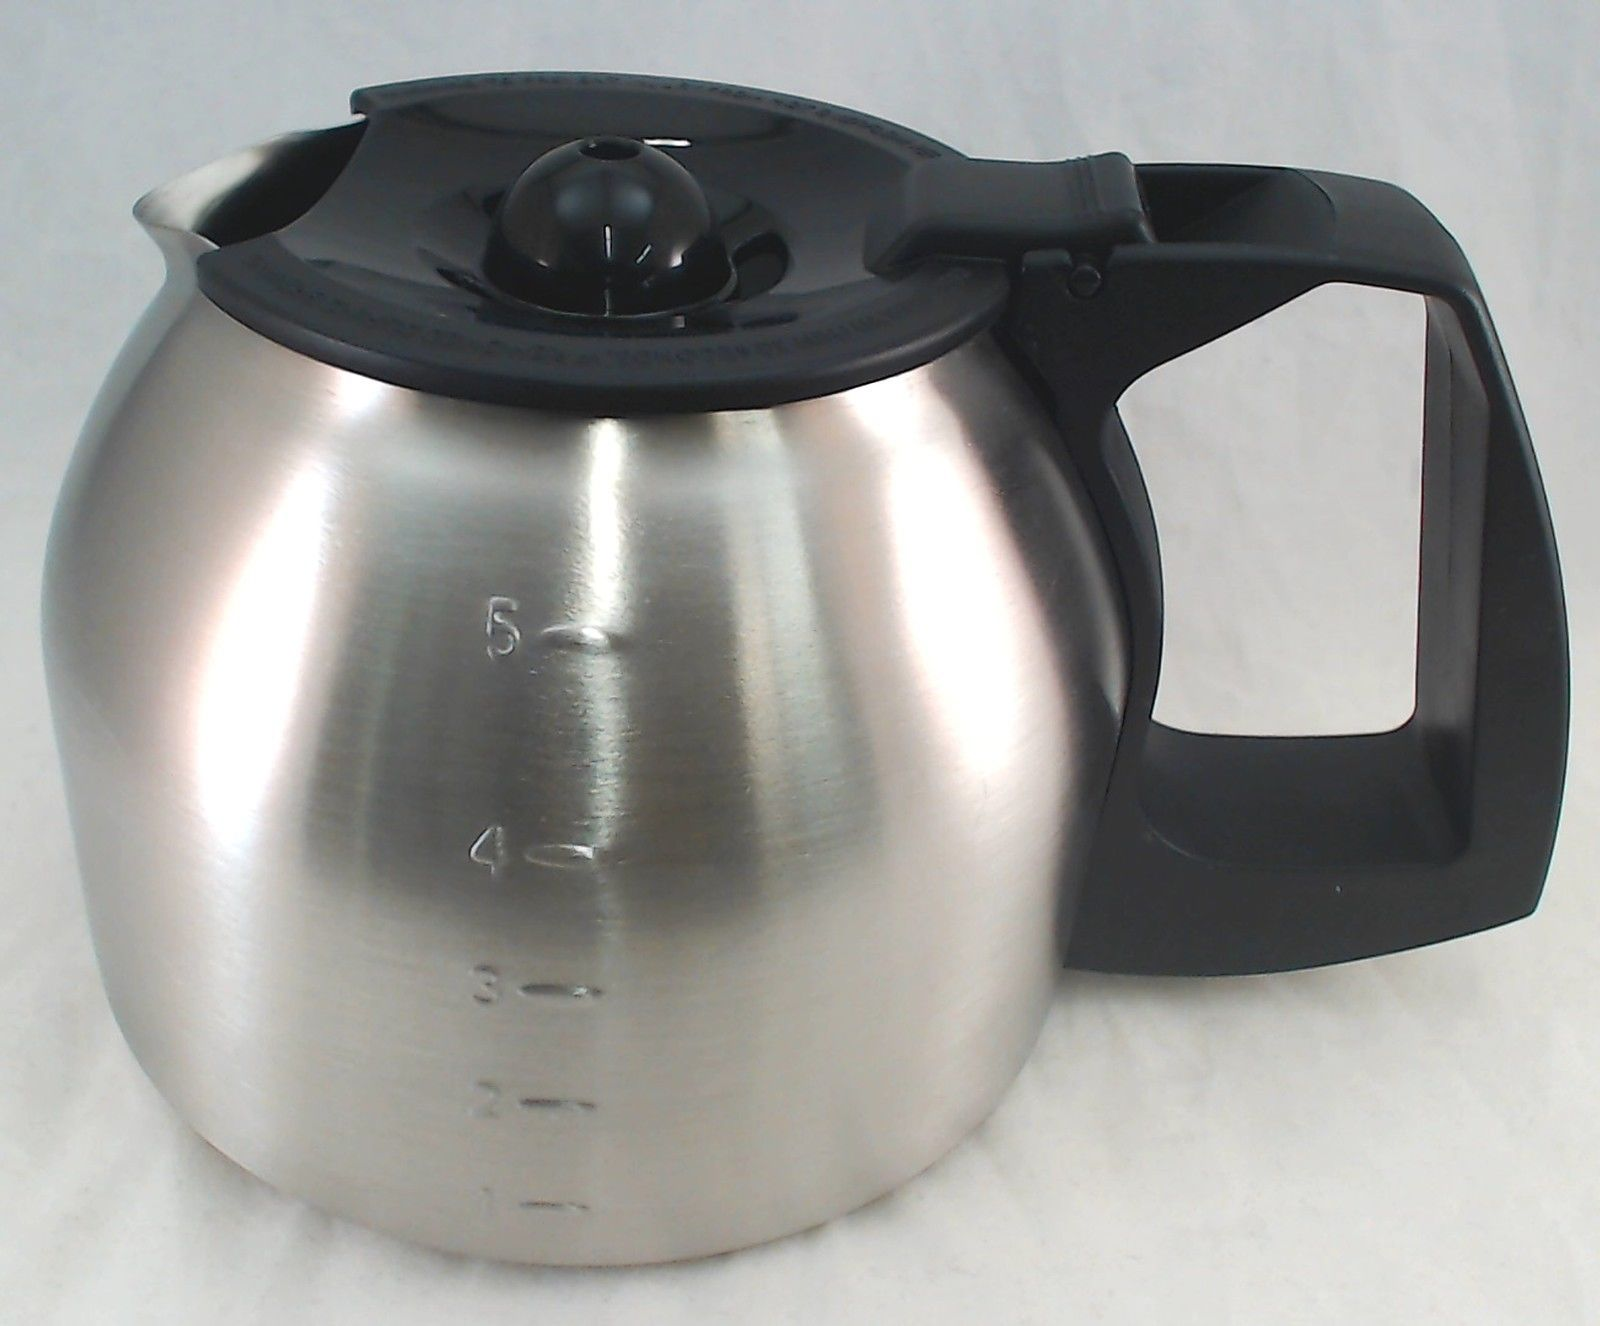 Mr. Coffee 5 Cup, Stainless Steel Carafe, Model: JWX9 139049-000-000 eBay